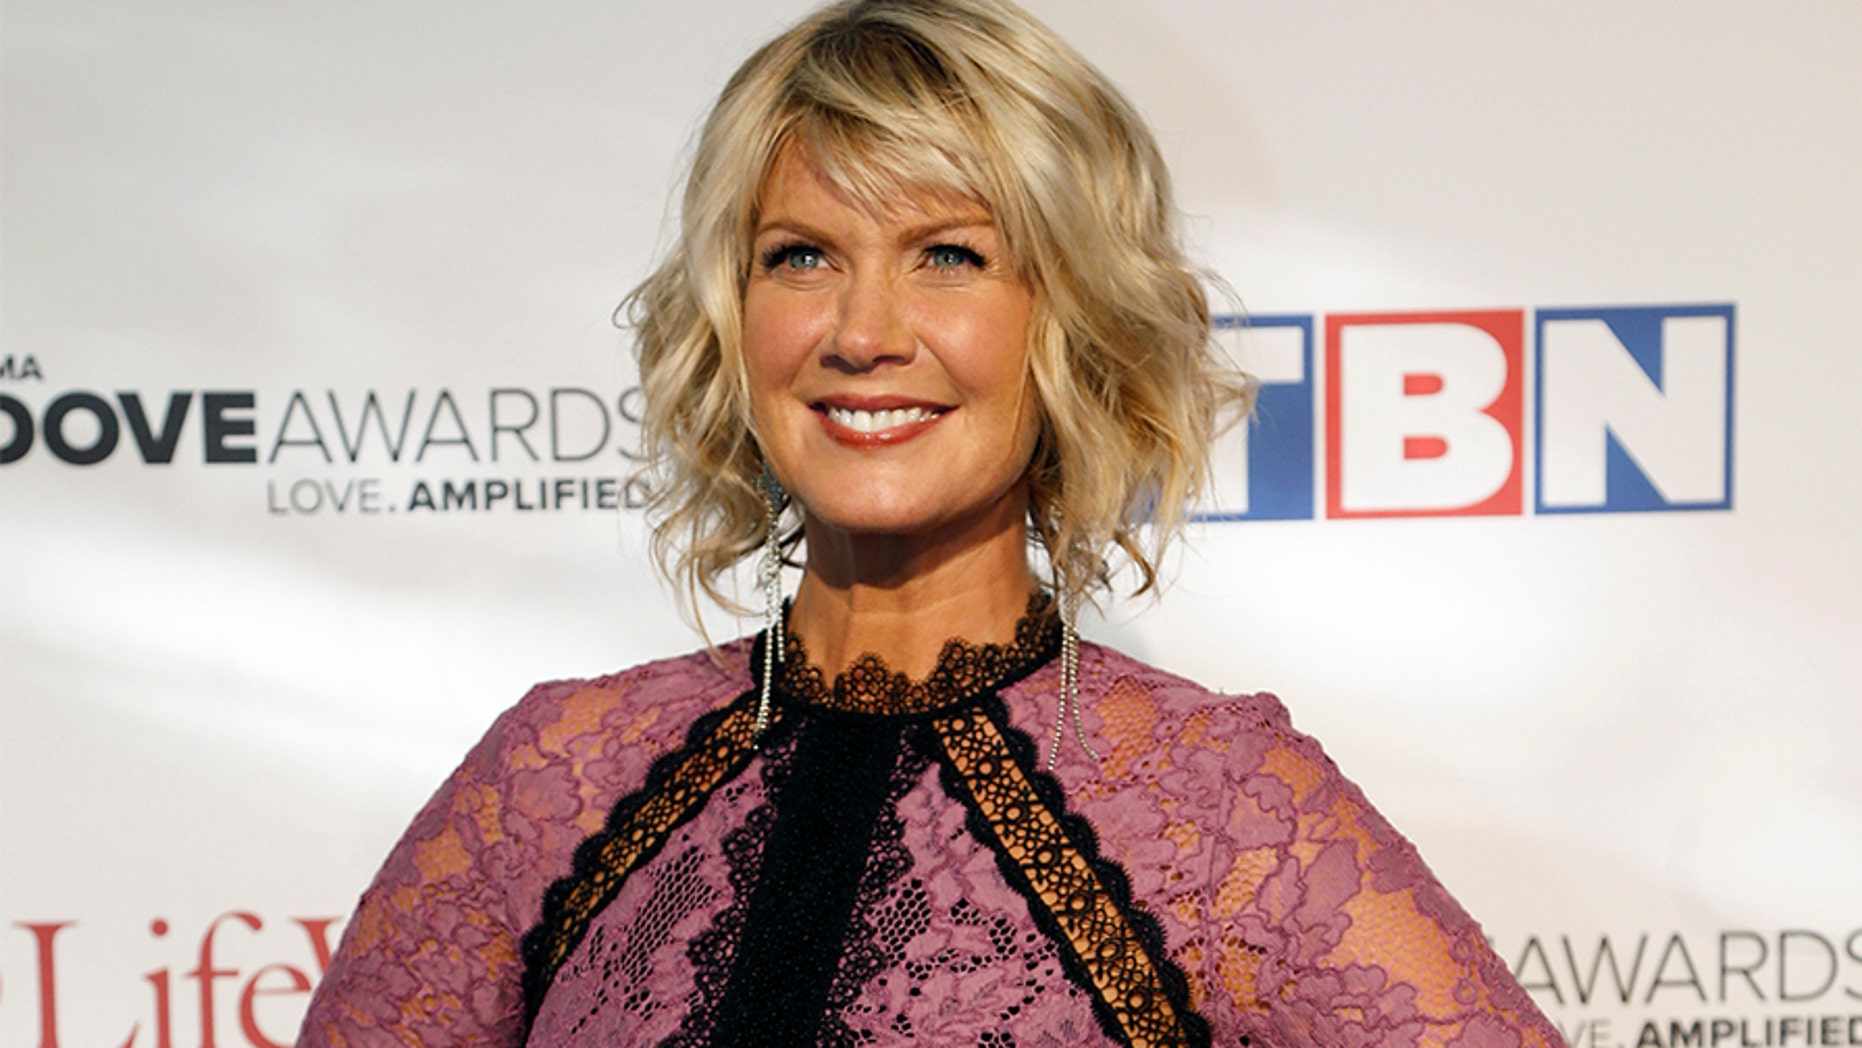 FILE - In this Oct. 11, 2016 file photo, Natalie Grant appears at the 47th Annual GMA Dove Awards in Nashville, Tenn. Grant will undergo thyroid surgery to remove tumors and will cancel shows between mid-October and November to recover. Grant posted a video message on Facebook on Thursday, Sept. 21, 2017, explaining that doctors had been monitoring several tumors or nodules on her thyroid for years. She asked for prayers and said she has complete faith in God.  (Photo by Donn Jones/Invision/AP, File)